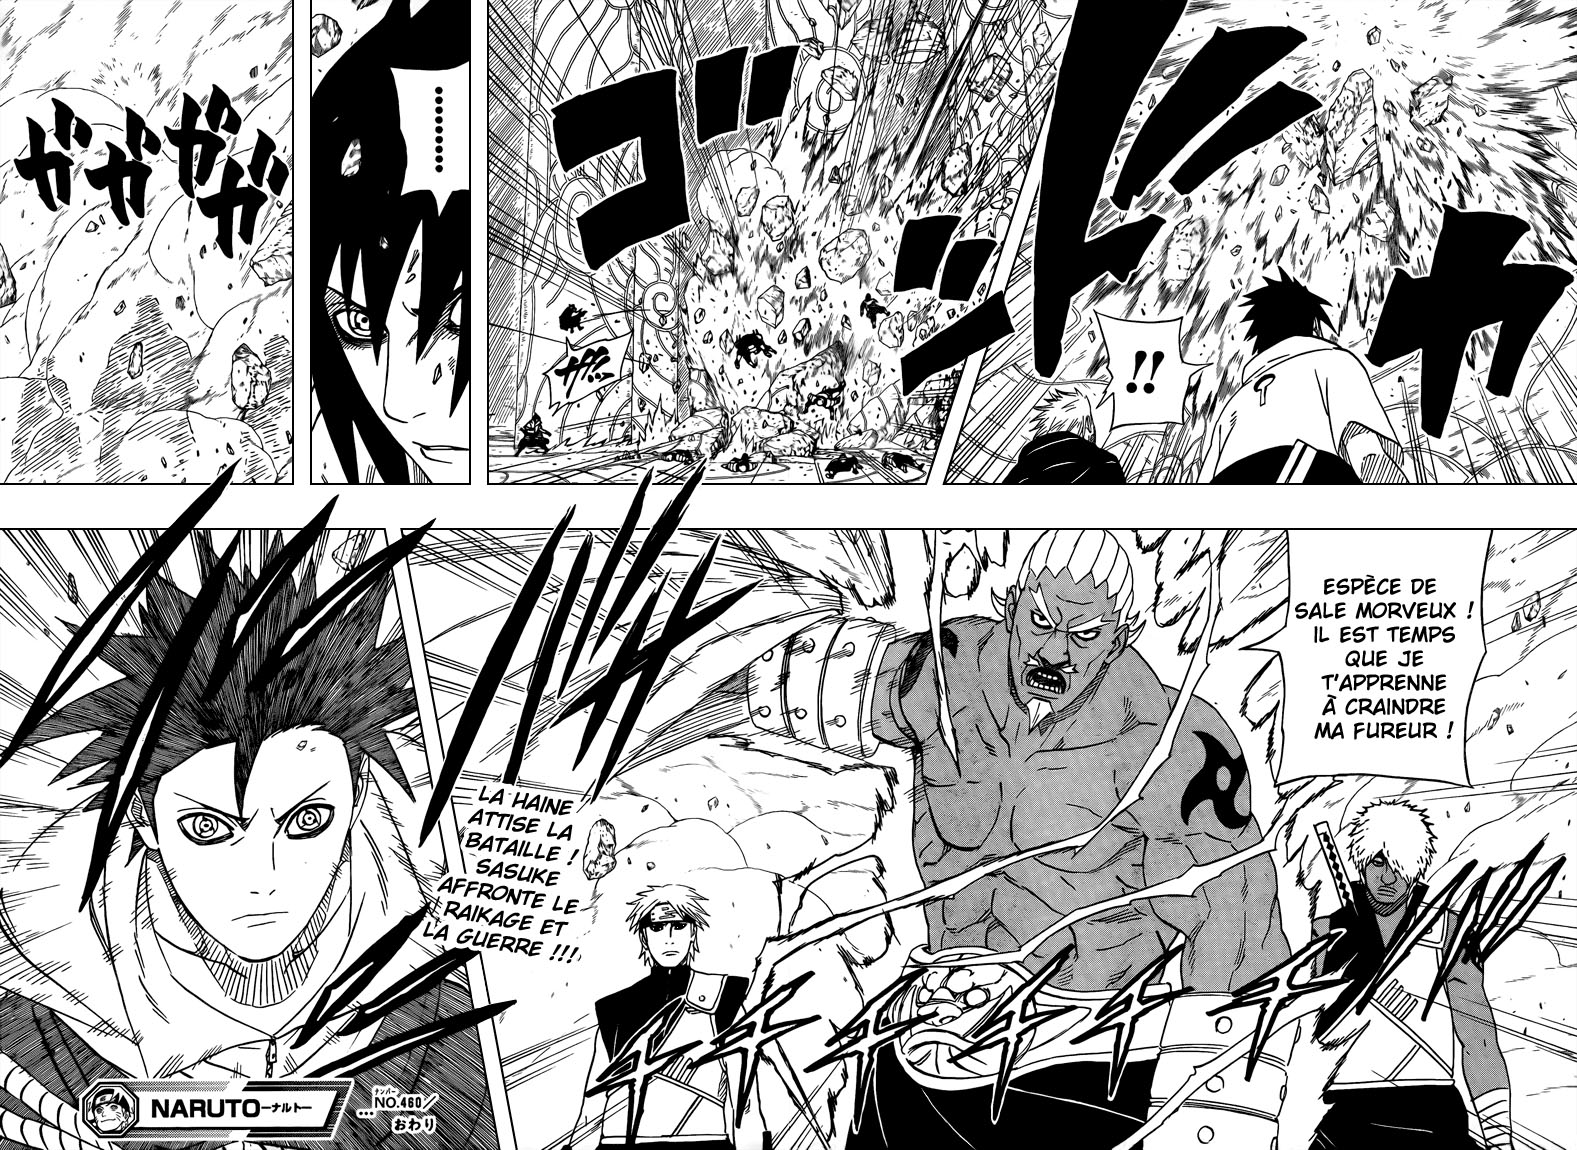 Chapitre Scan Naruto 460 FR Page 17-18